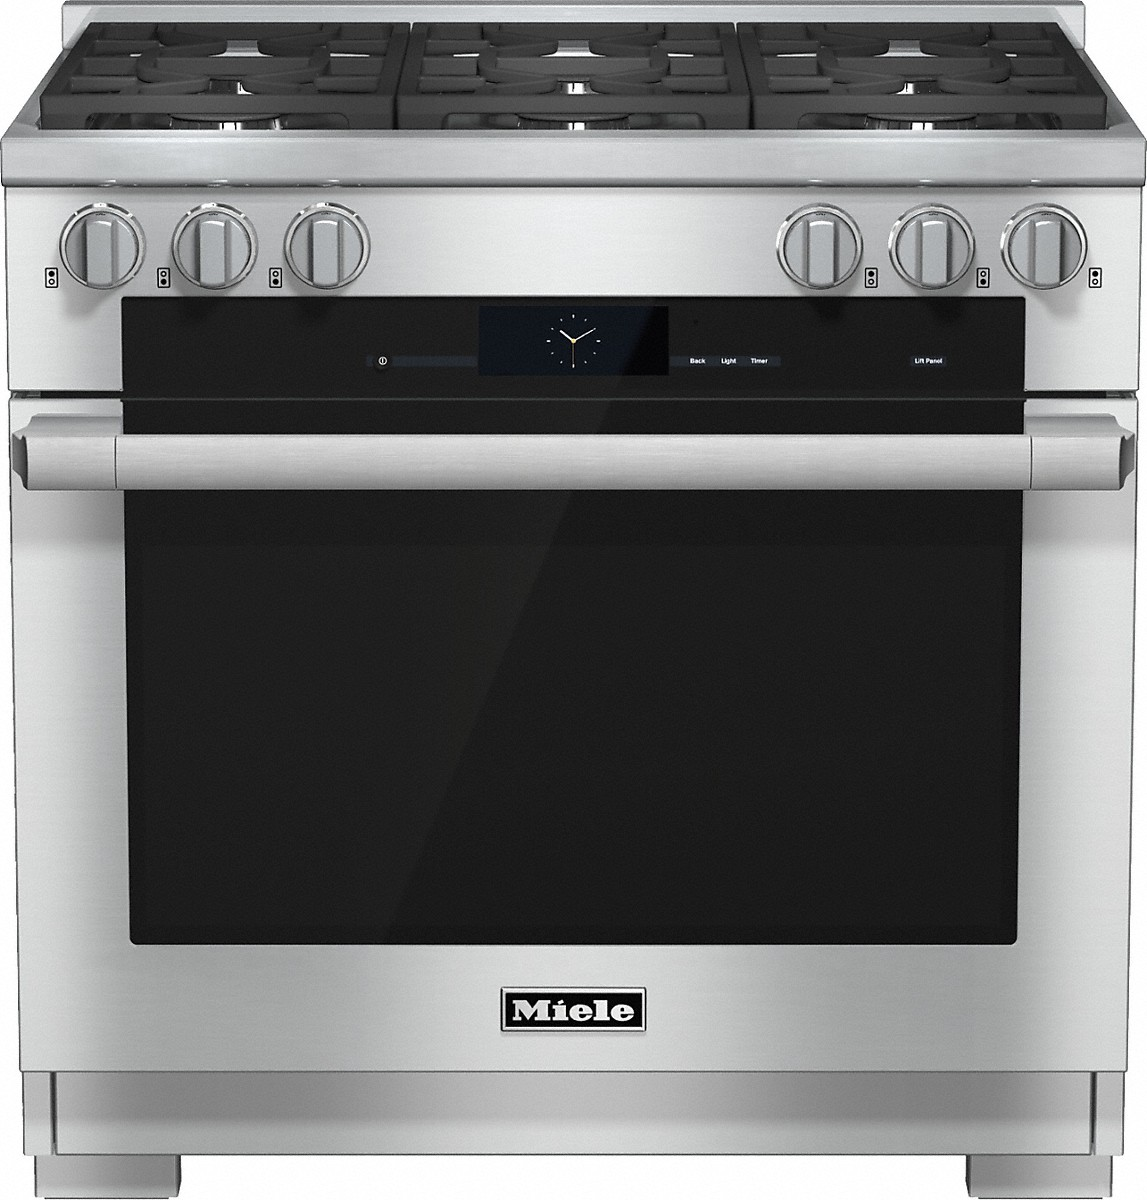 Model: HR 1934 G-FM | Miele 36 inch rangeDual Fuel with M Touch controls, Moisture Plus and M Pro dual stacked burners